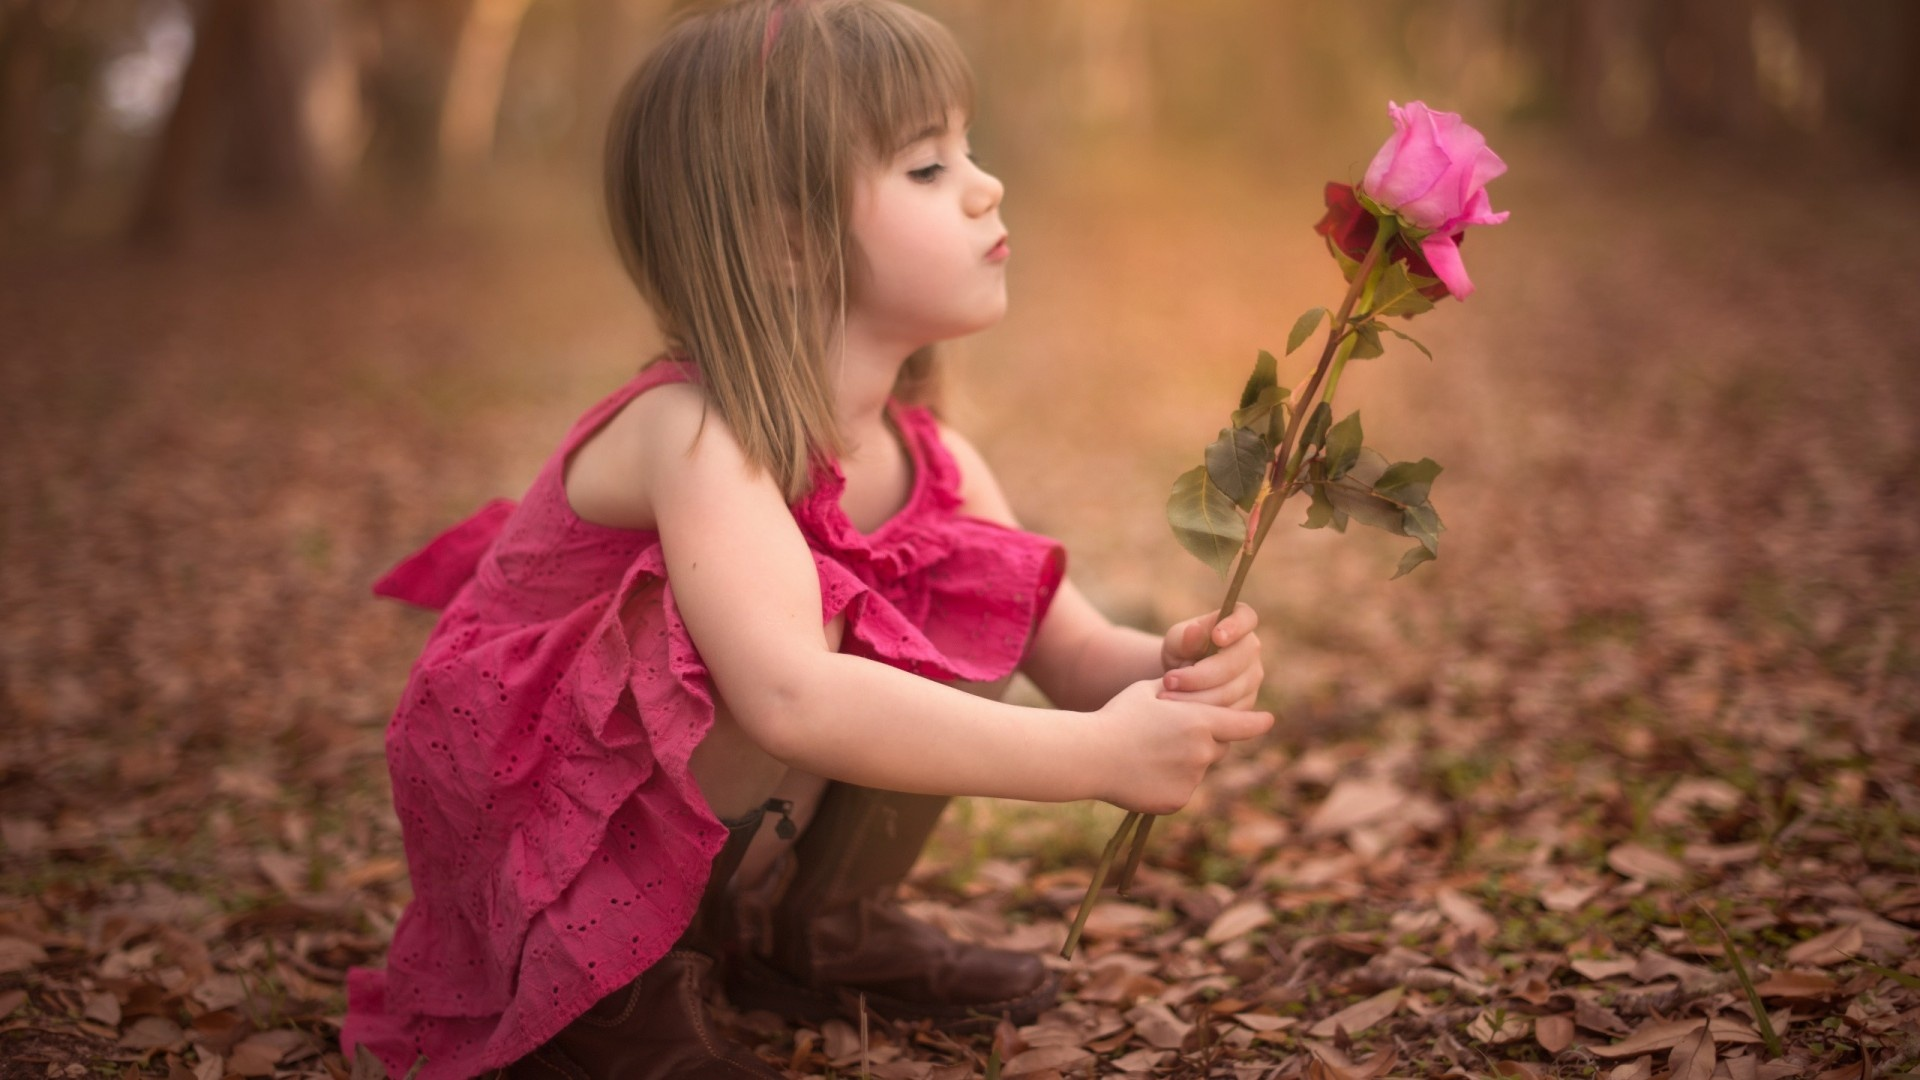 Autumn Baby Girl Rose Flower Wallpapers - 1920x1080 - 364719